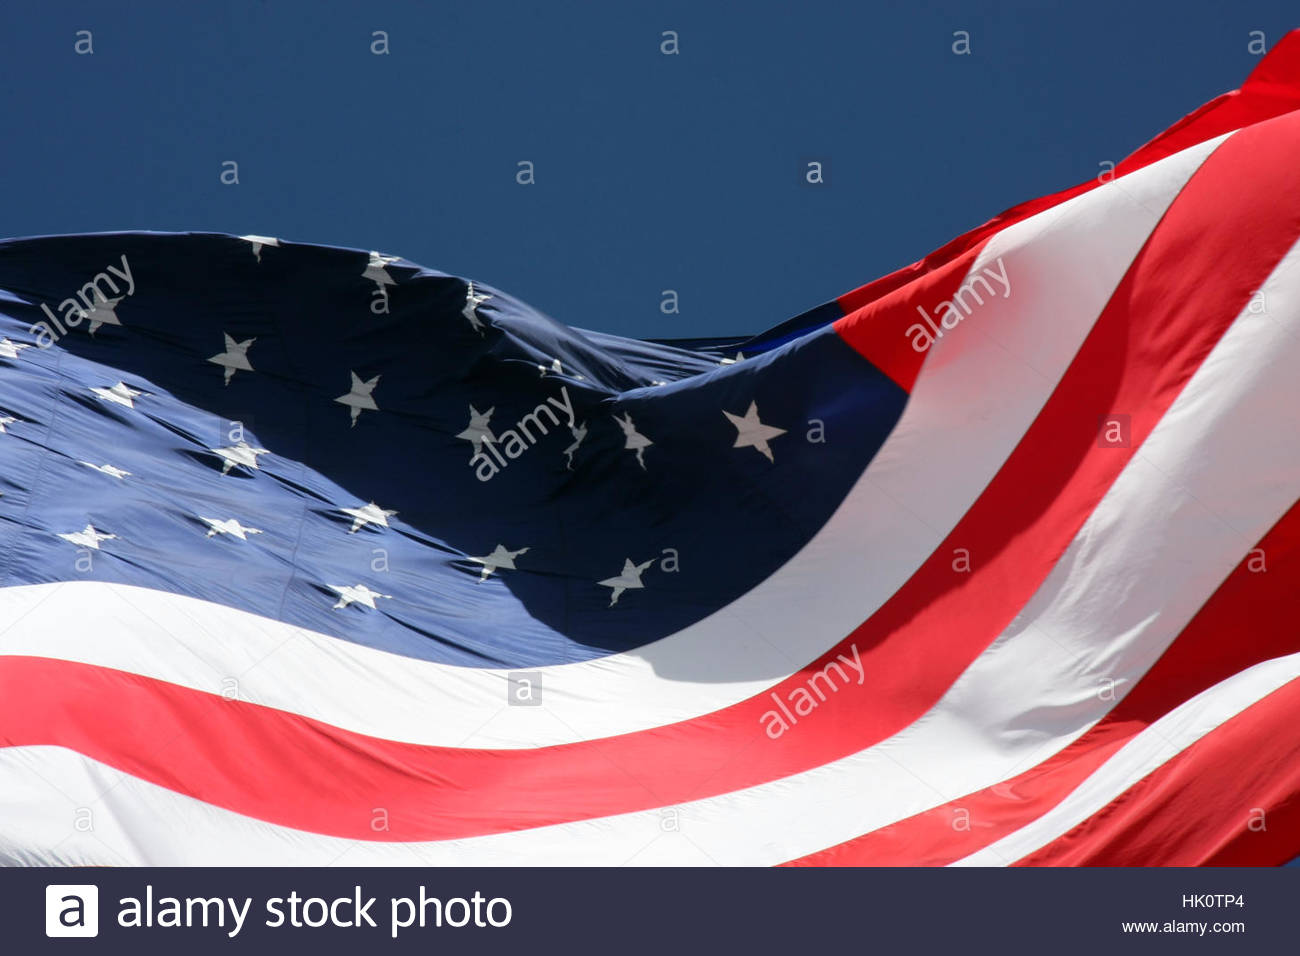 usa, america, flag, pictogram, symbol, pictograph, trade symbol, sign, signal, - Stock Image